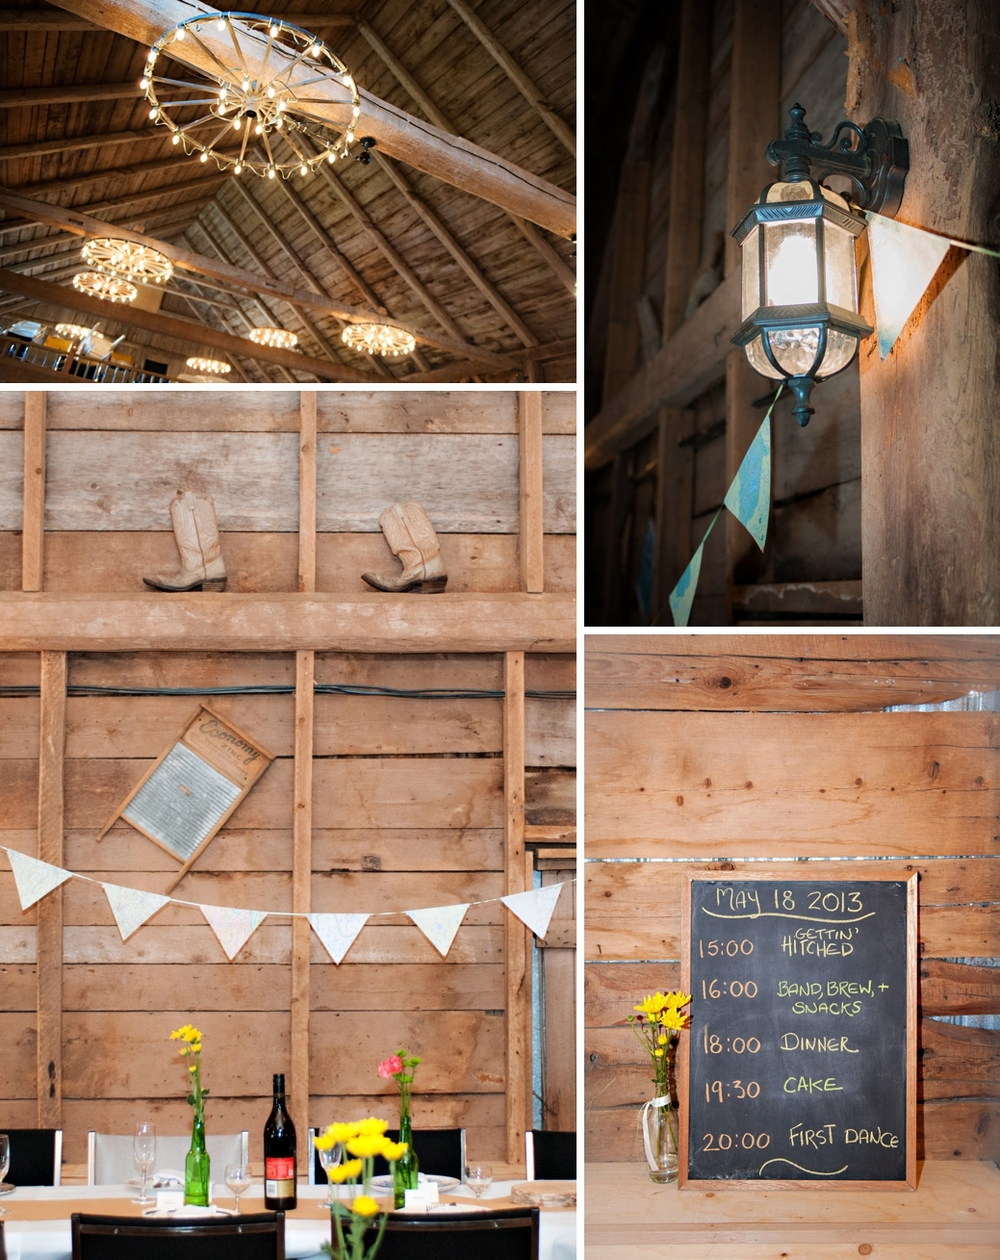 The_Music_Barn_Sackville_Wedding42.jpg